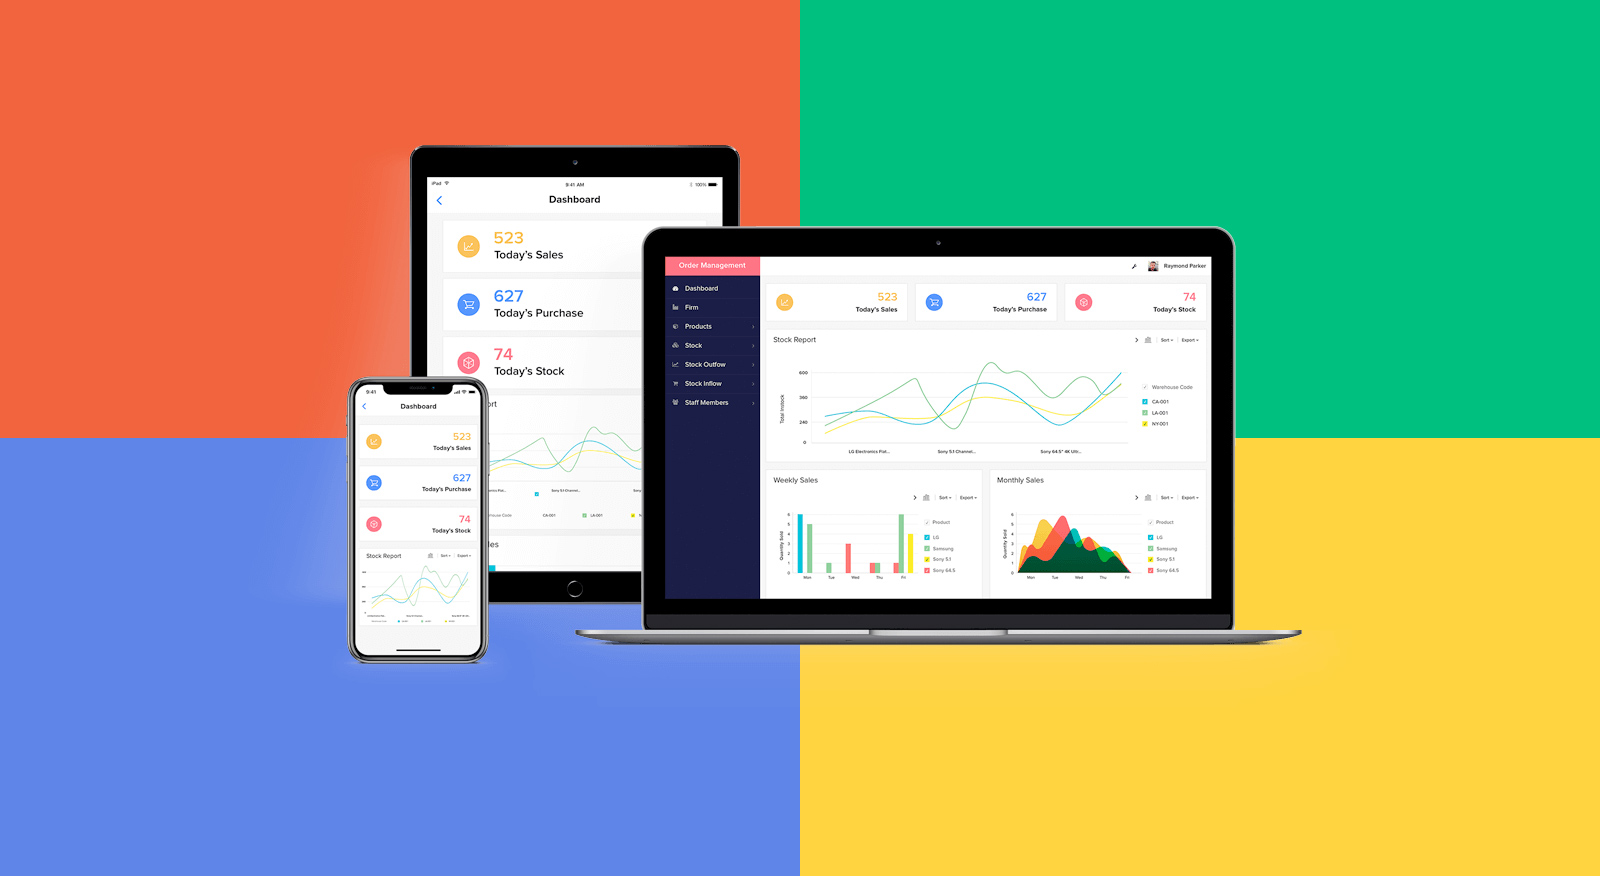 zoho-creator-feature-onepoint-software-solutions-brisbane-web-develoeprs